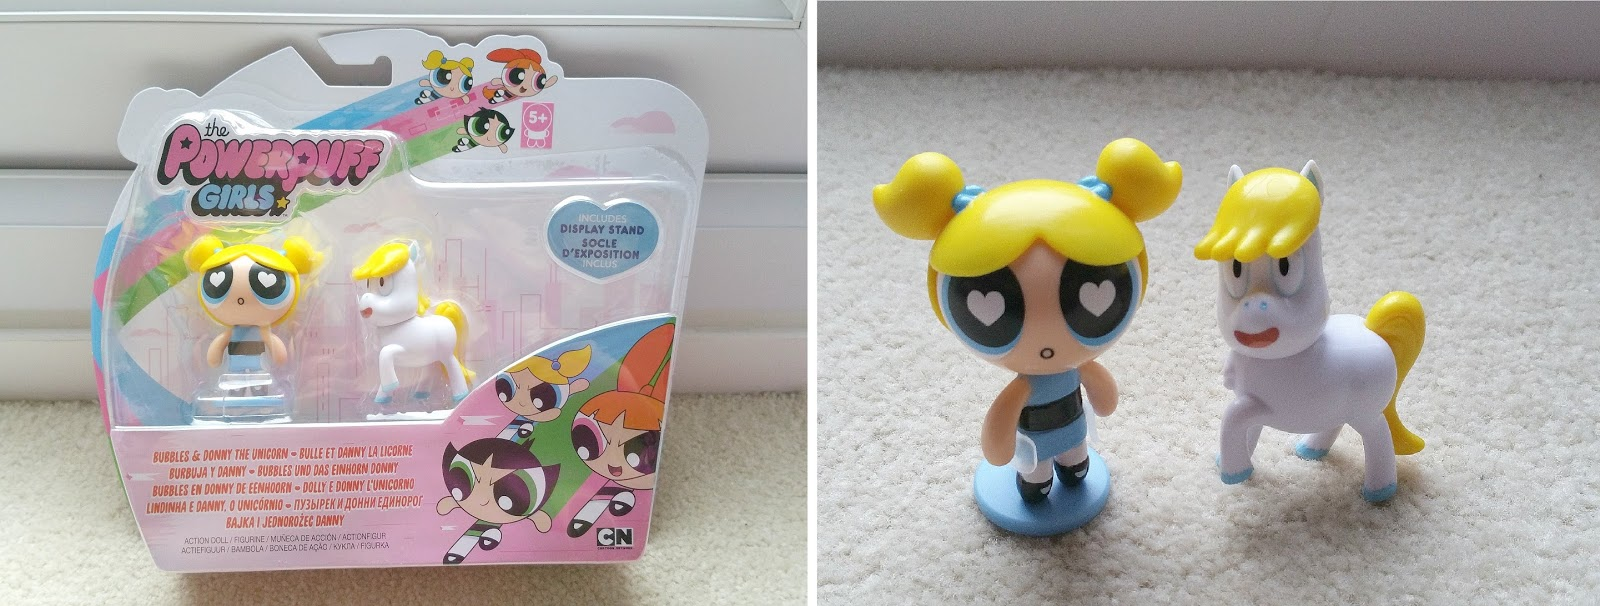 Powerpuff Girls Storymaker System, Powerpuff Girls action dolls, playset for girls